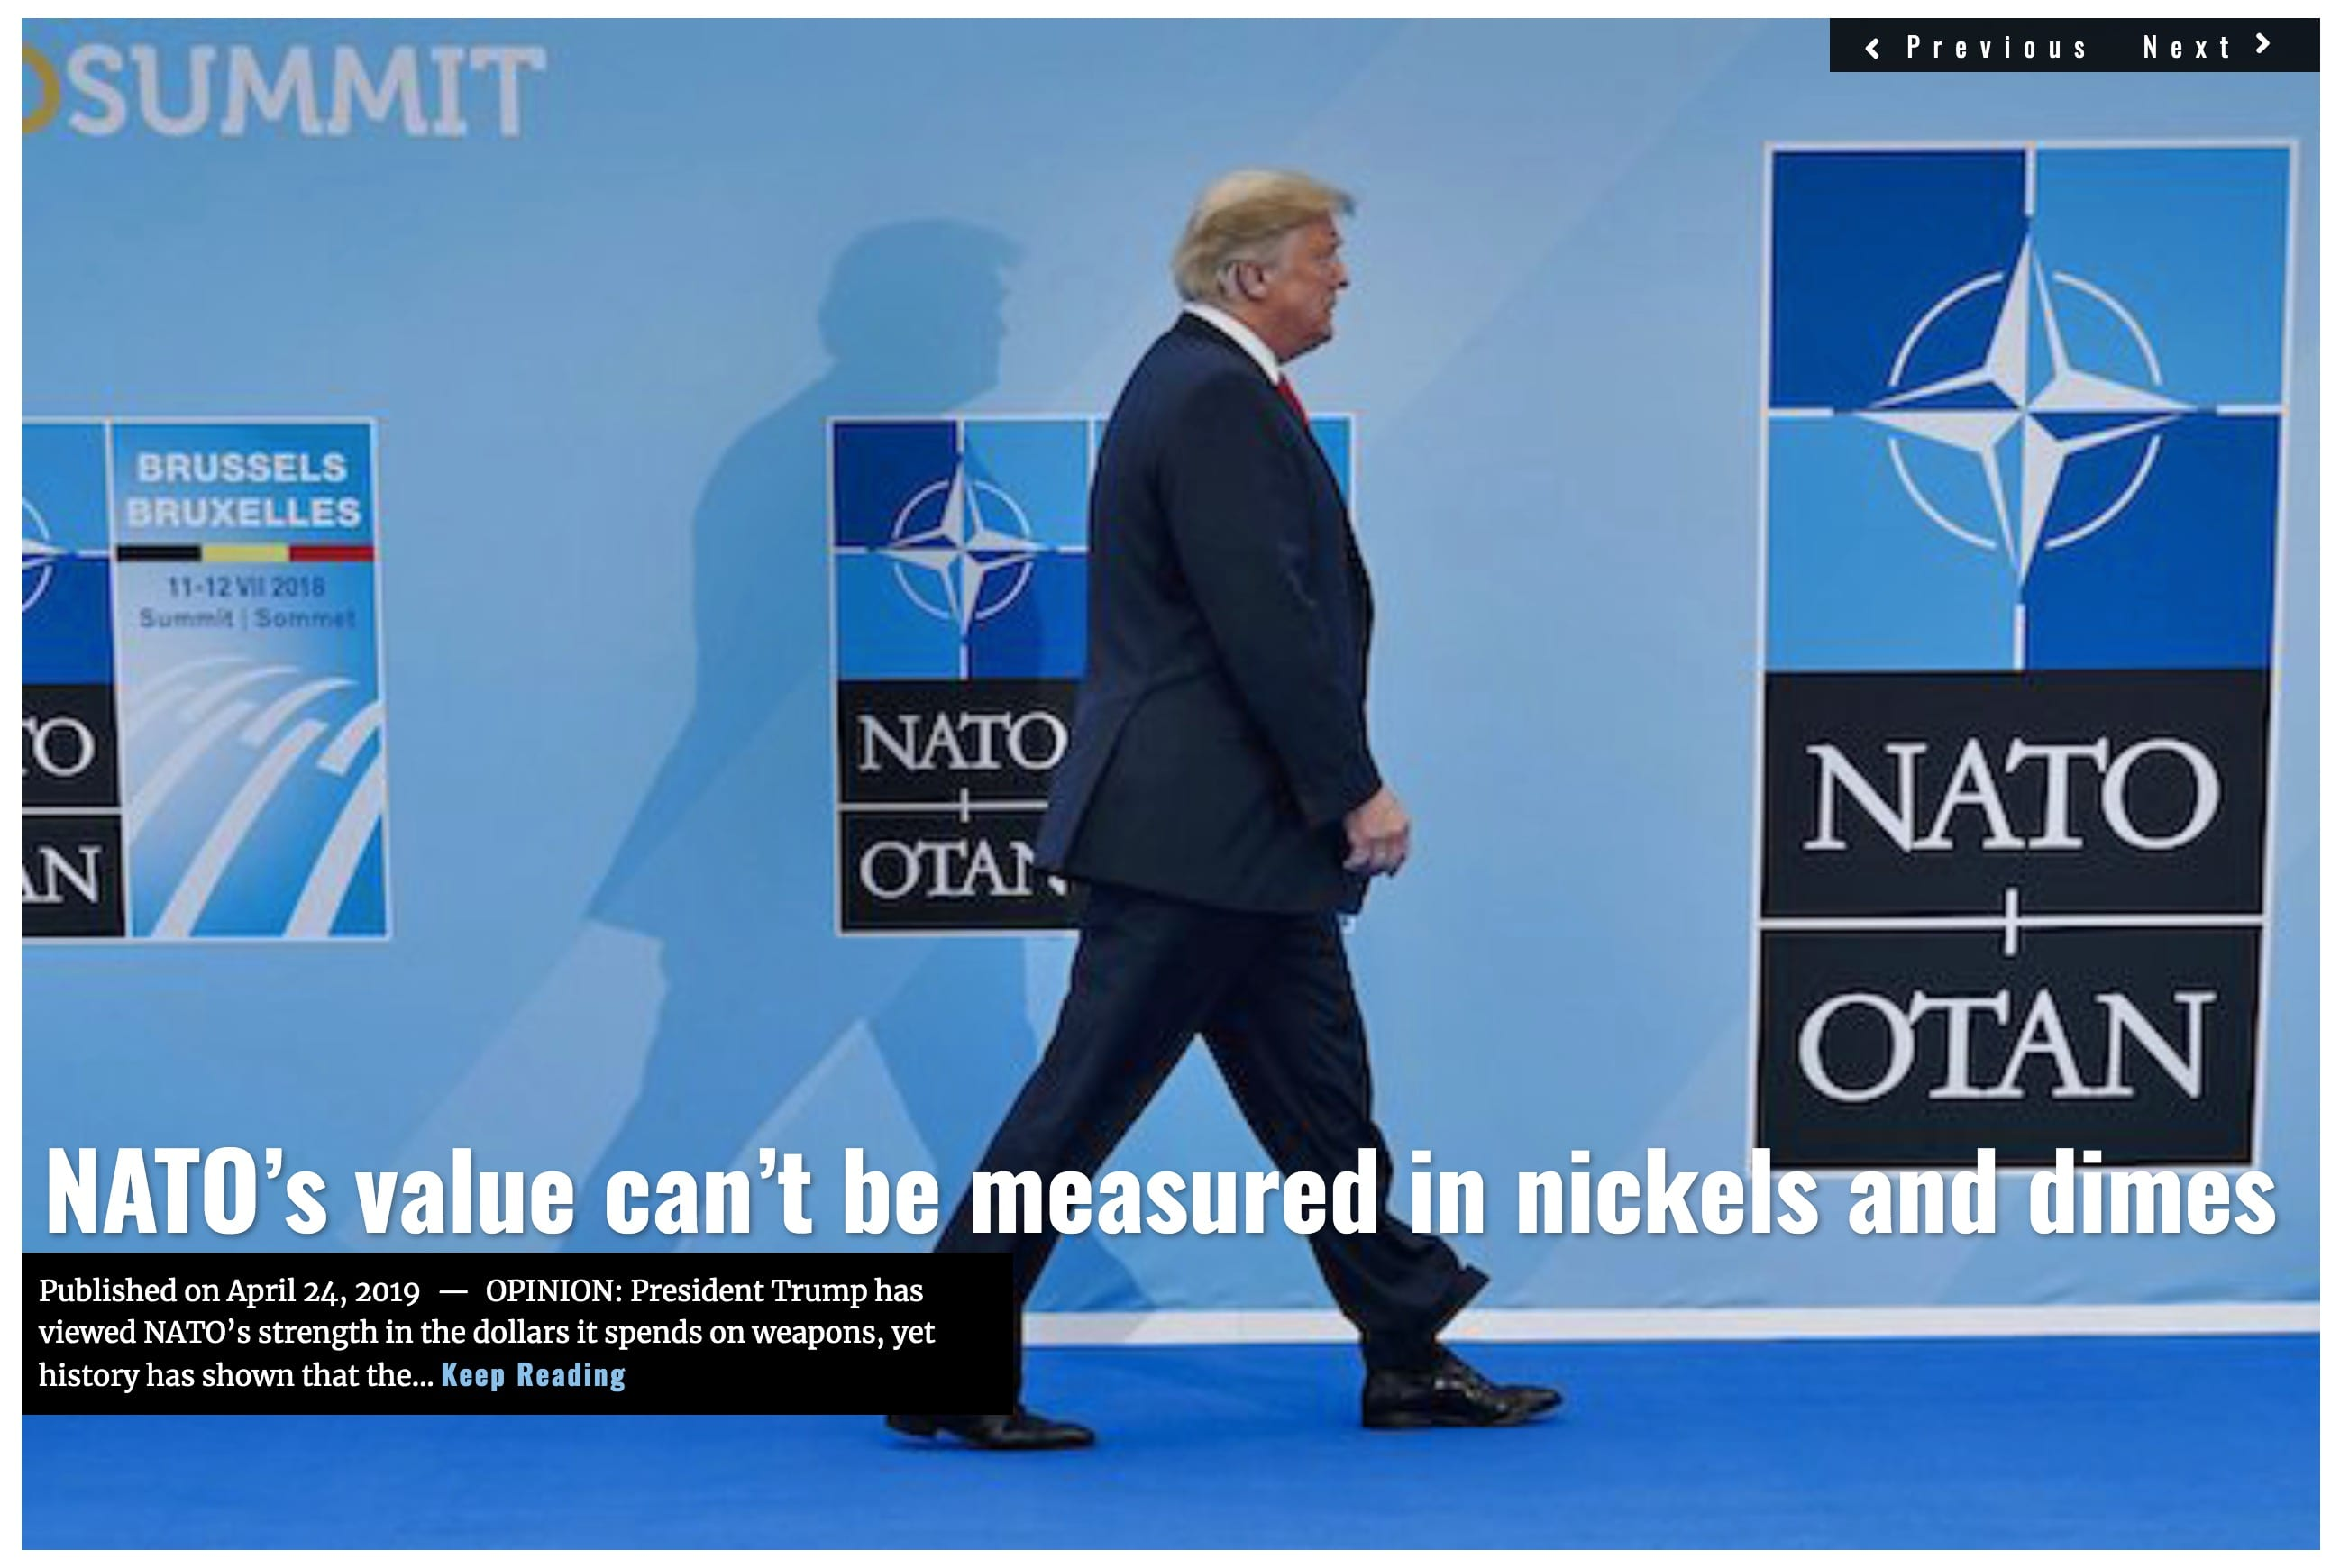 Image Lima Charlie News Headline NATOs value Trump APR 24 2019 M. Morford